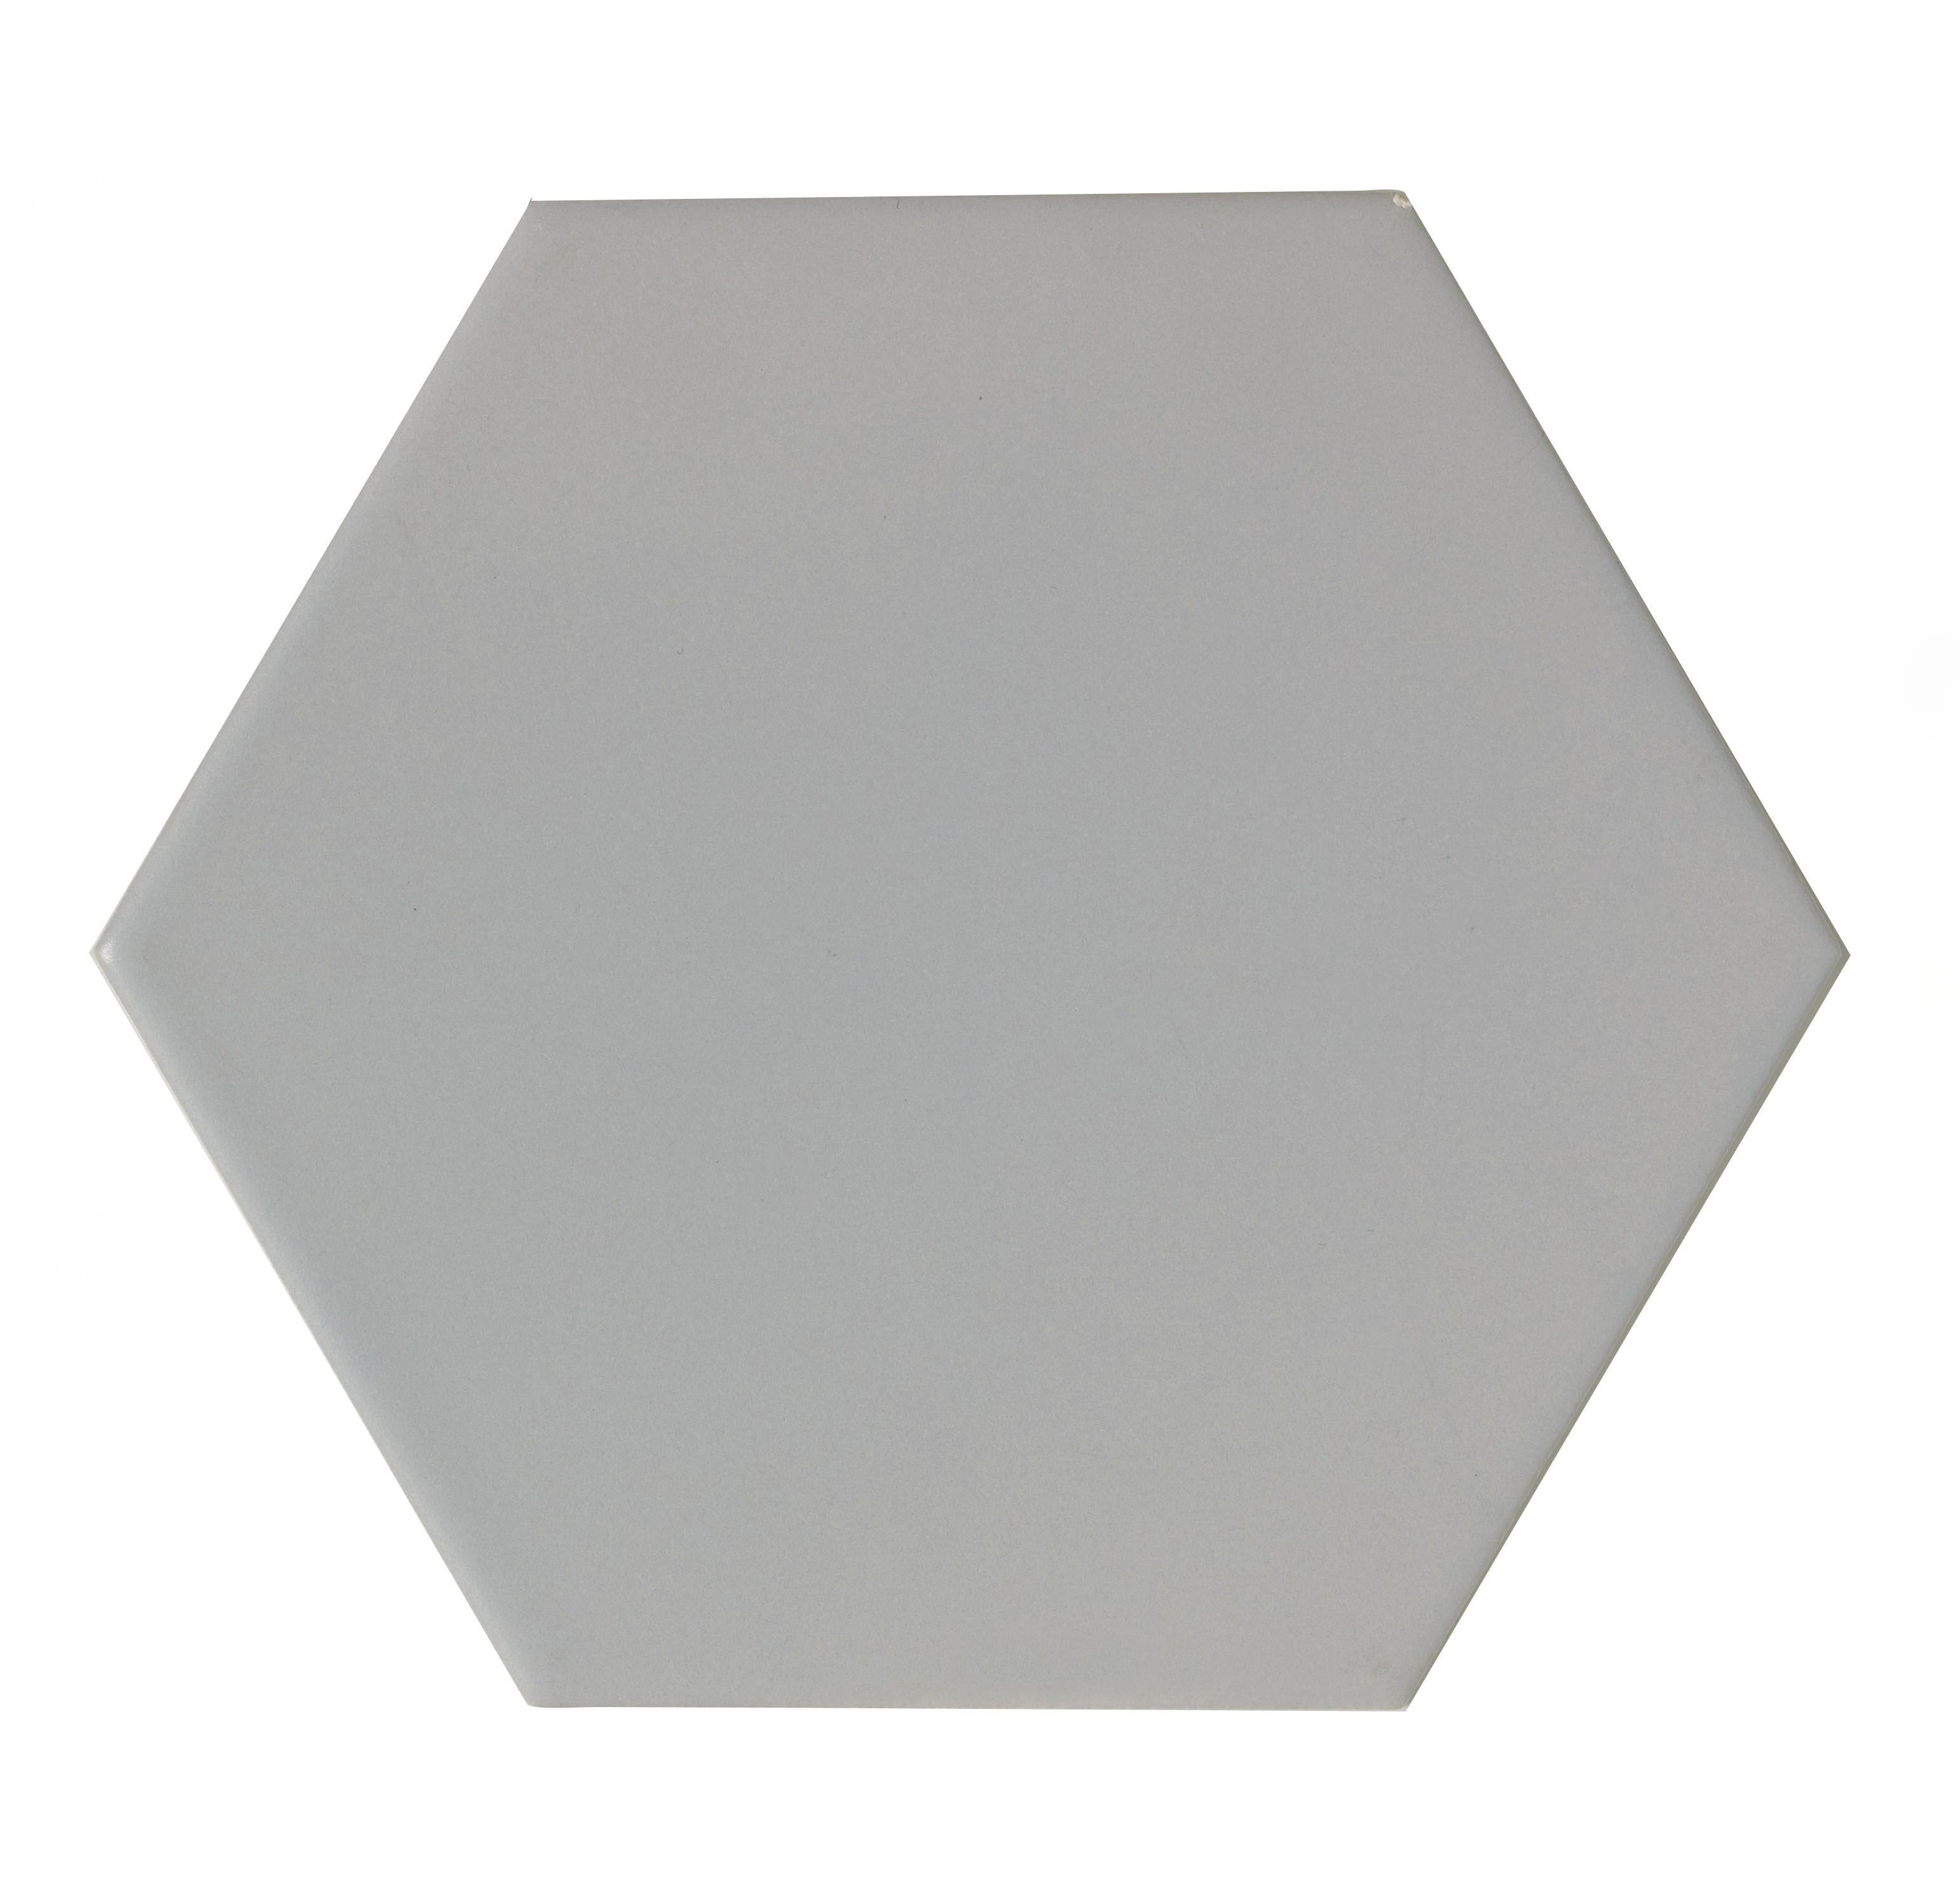 City Chic Soft Grey Satin Hexagon Ceramic Wall Tile, Pack Of 50, (l)150mm (w)173mm